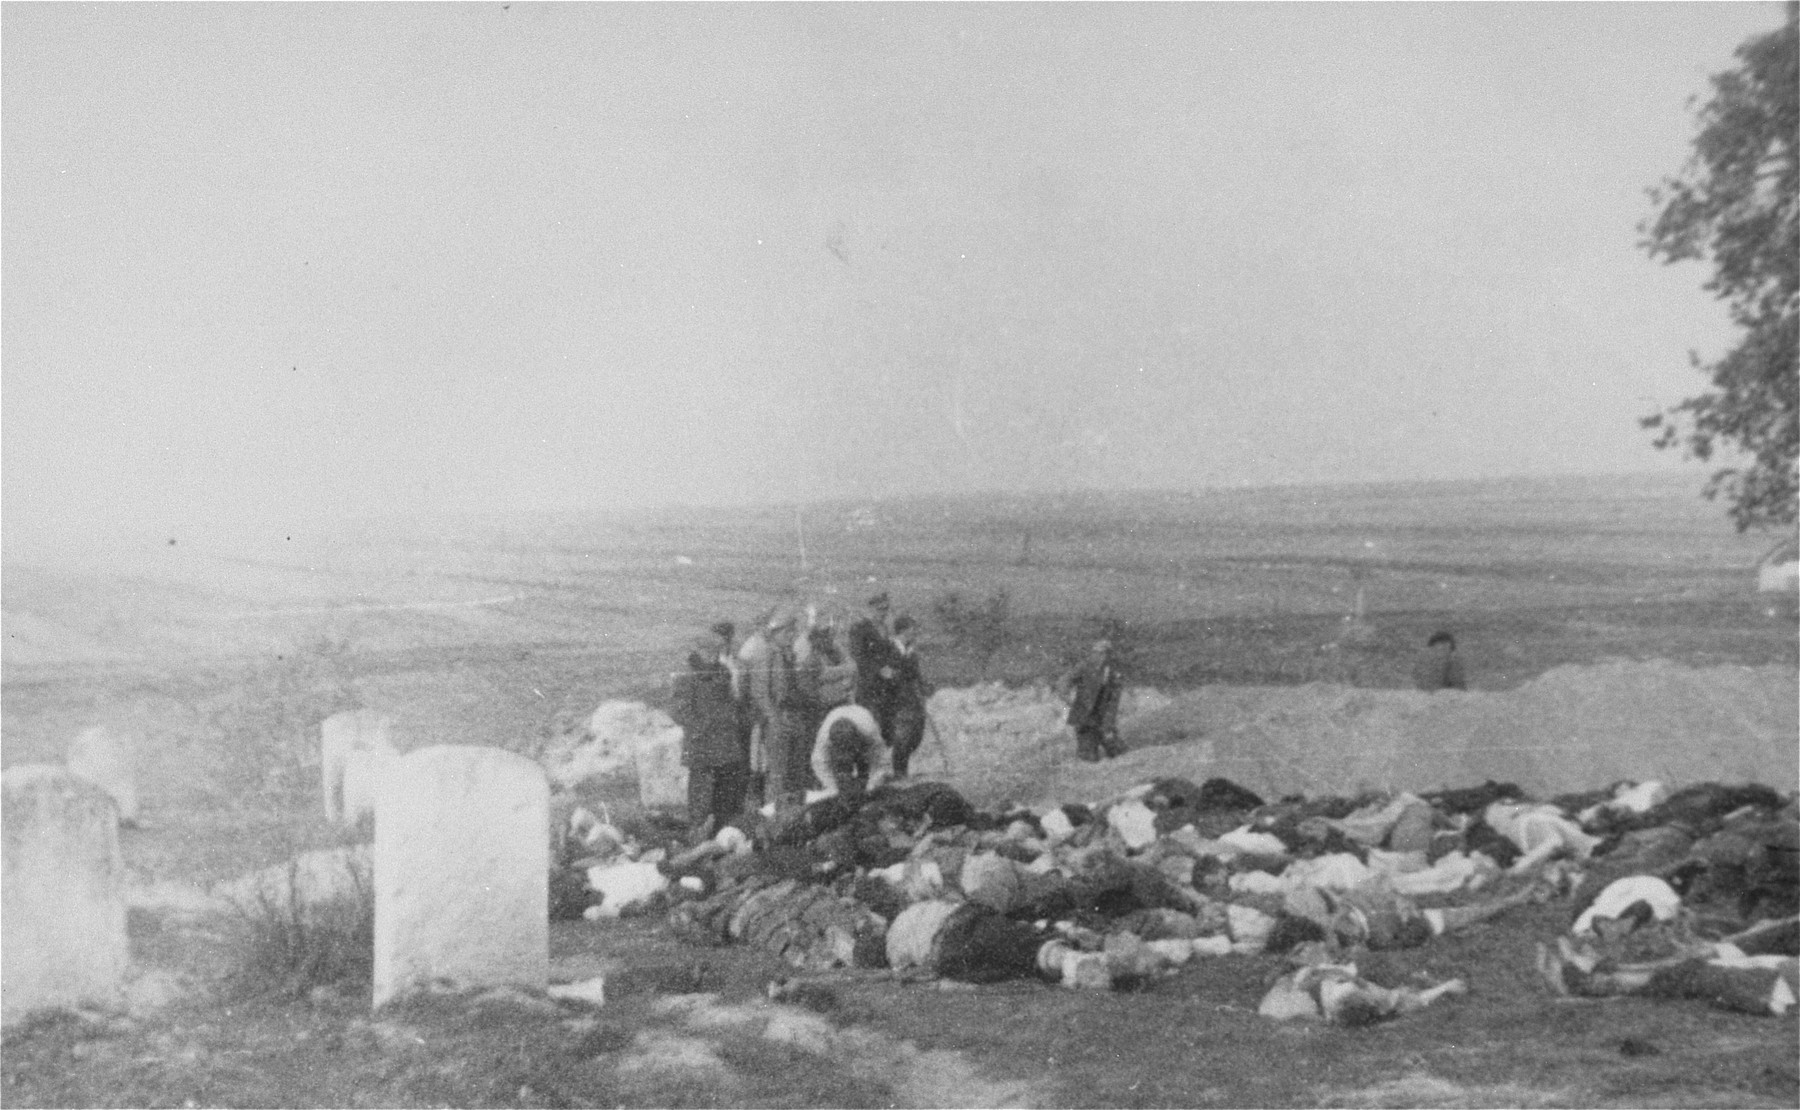 Preparation of a mass grave to bury the Jews murdered in a Jewish cemetery in the vicinity of Bilgoraj.